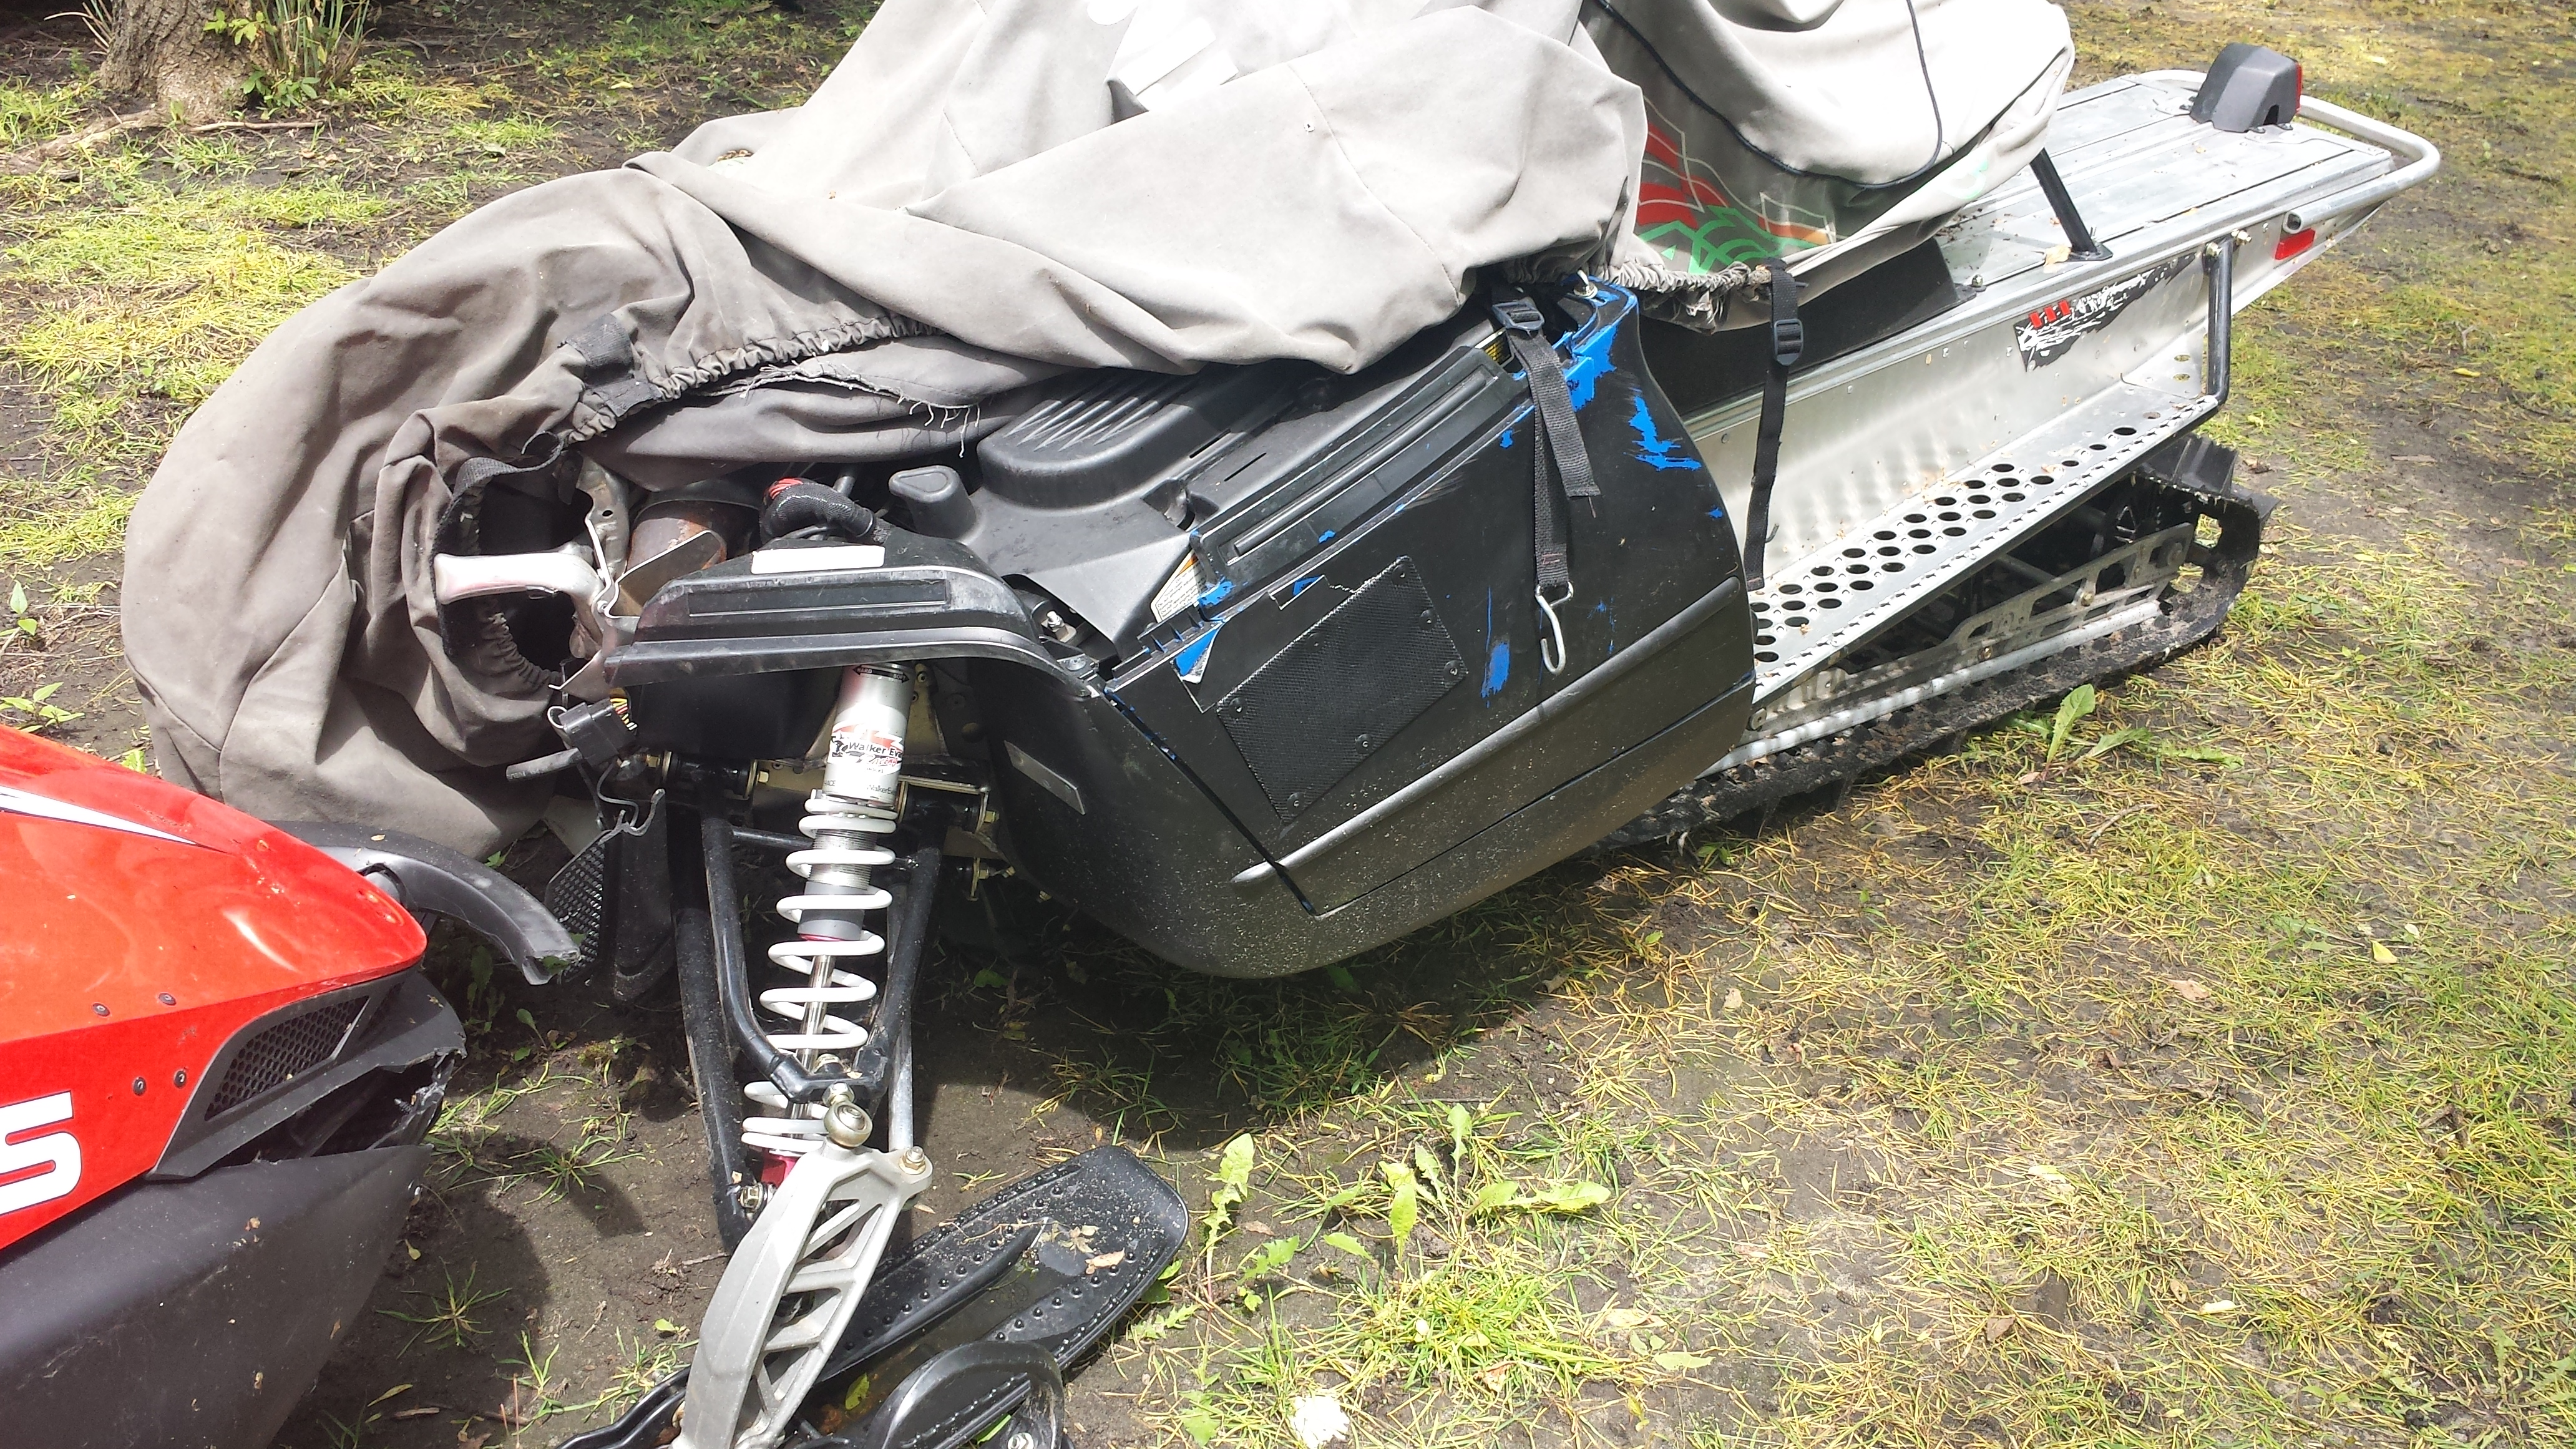 Parts available from 2008 Polaris 800